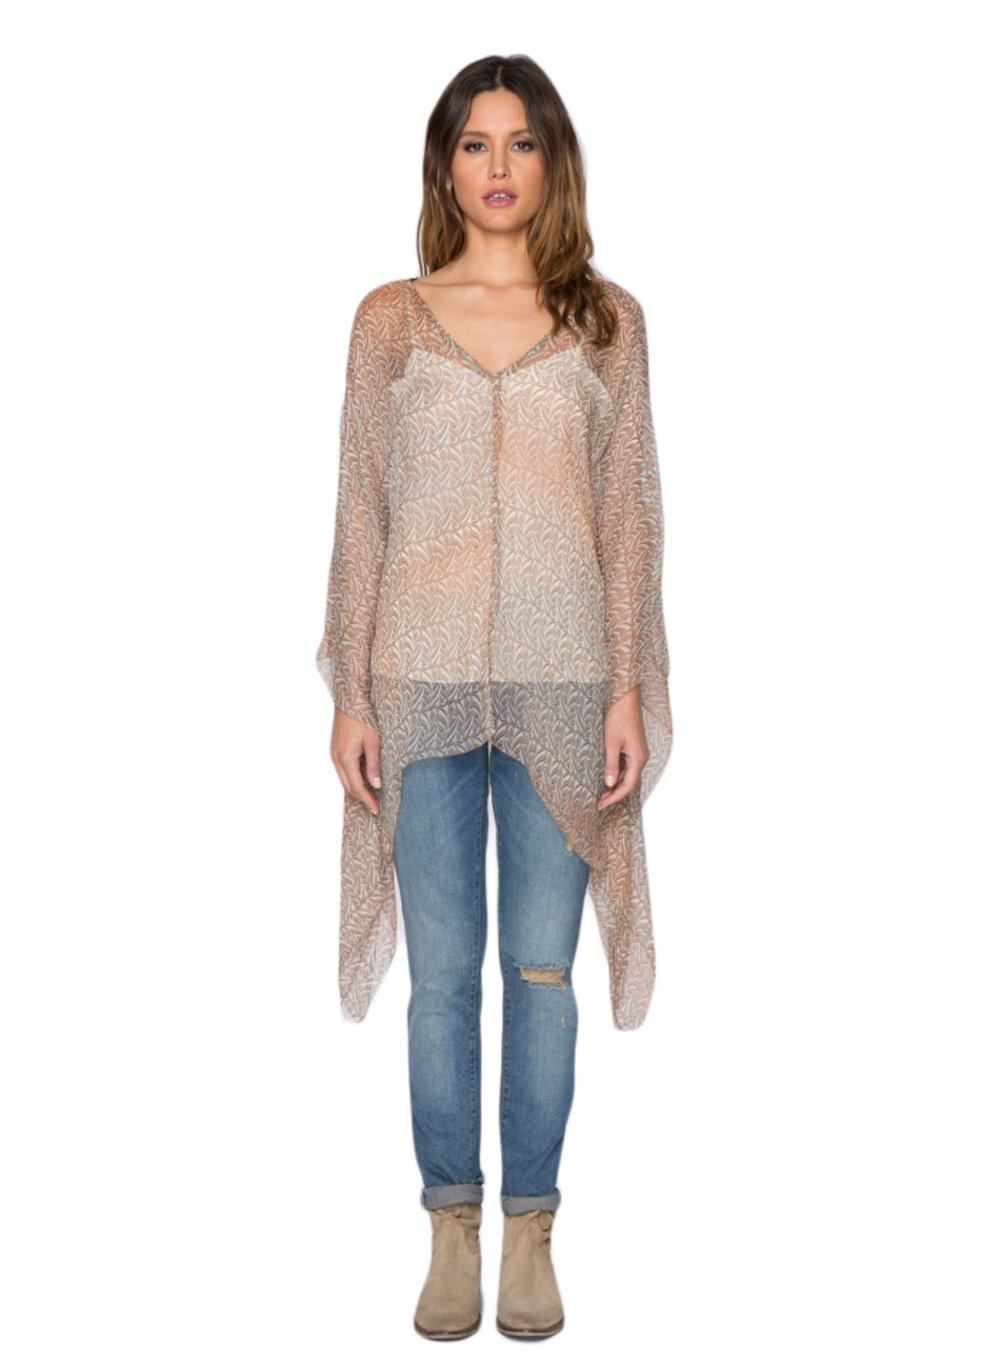 4 Love and Liberty by Johnny Was Paz Print Poncho (Small)